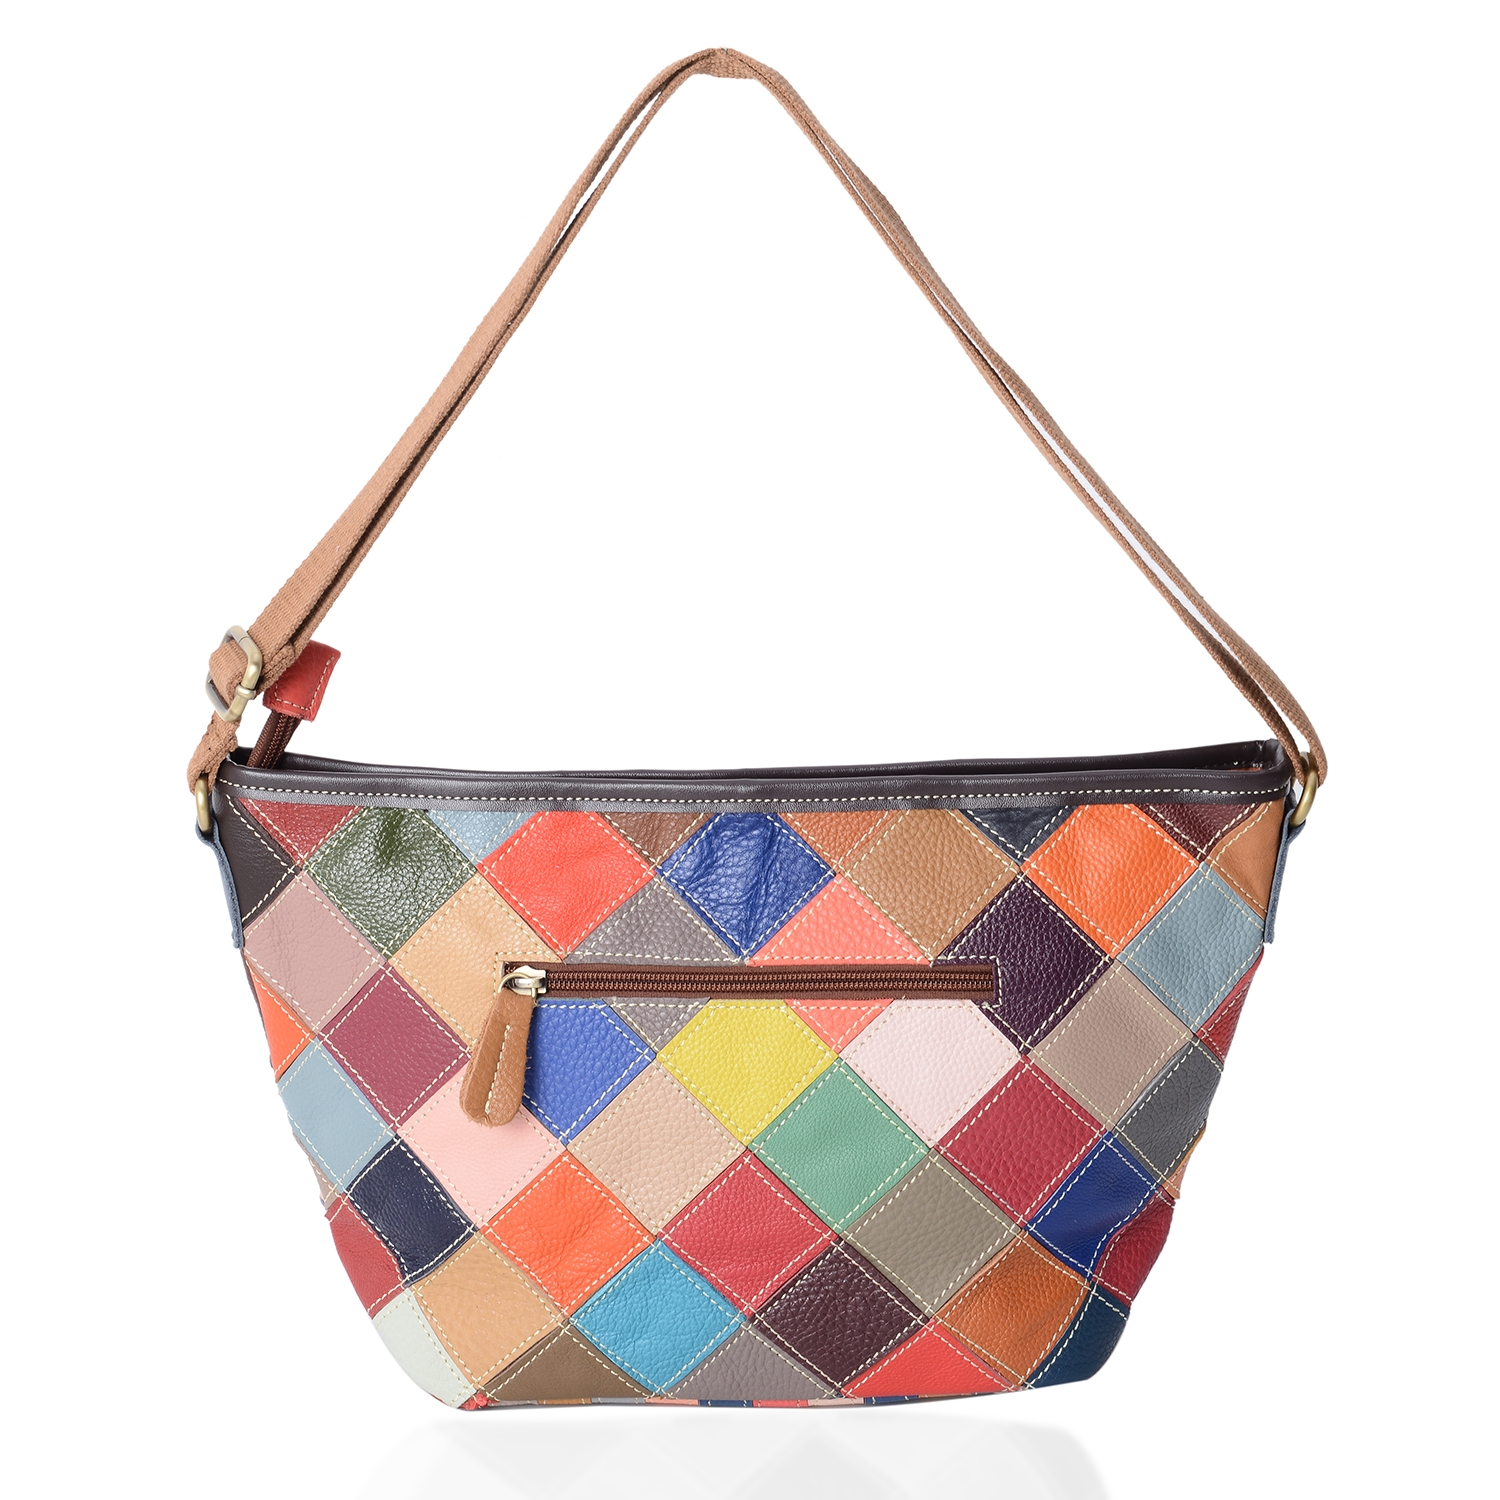 ... CHAOS BY ELSIE Multi Color Blocking Leather Crossbody Bag (14.4x9.6x4.4  ... 42d2e910a95d7